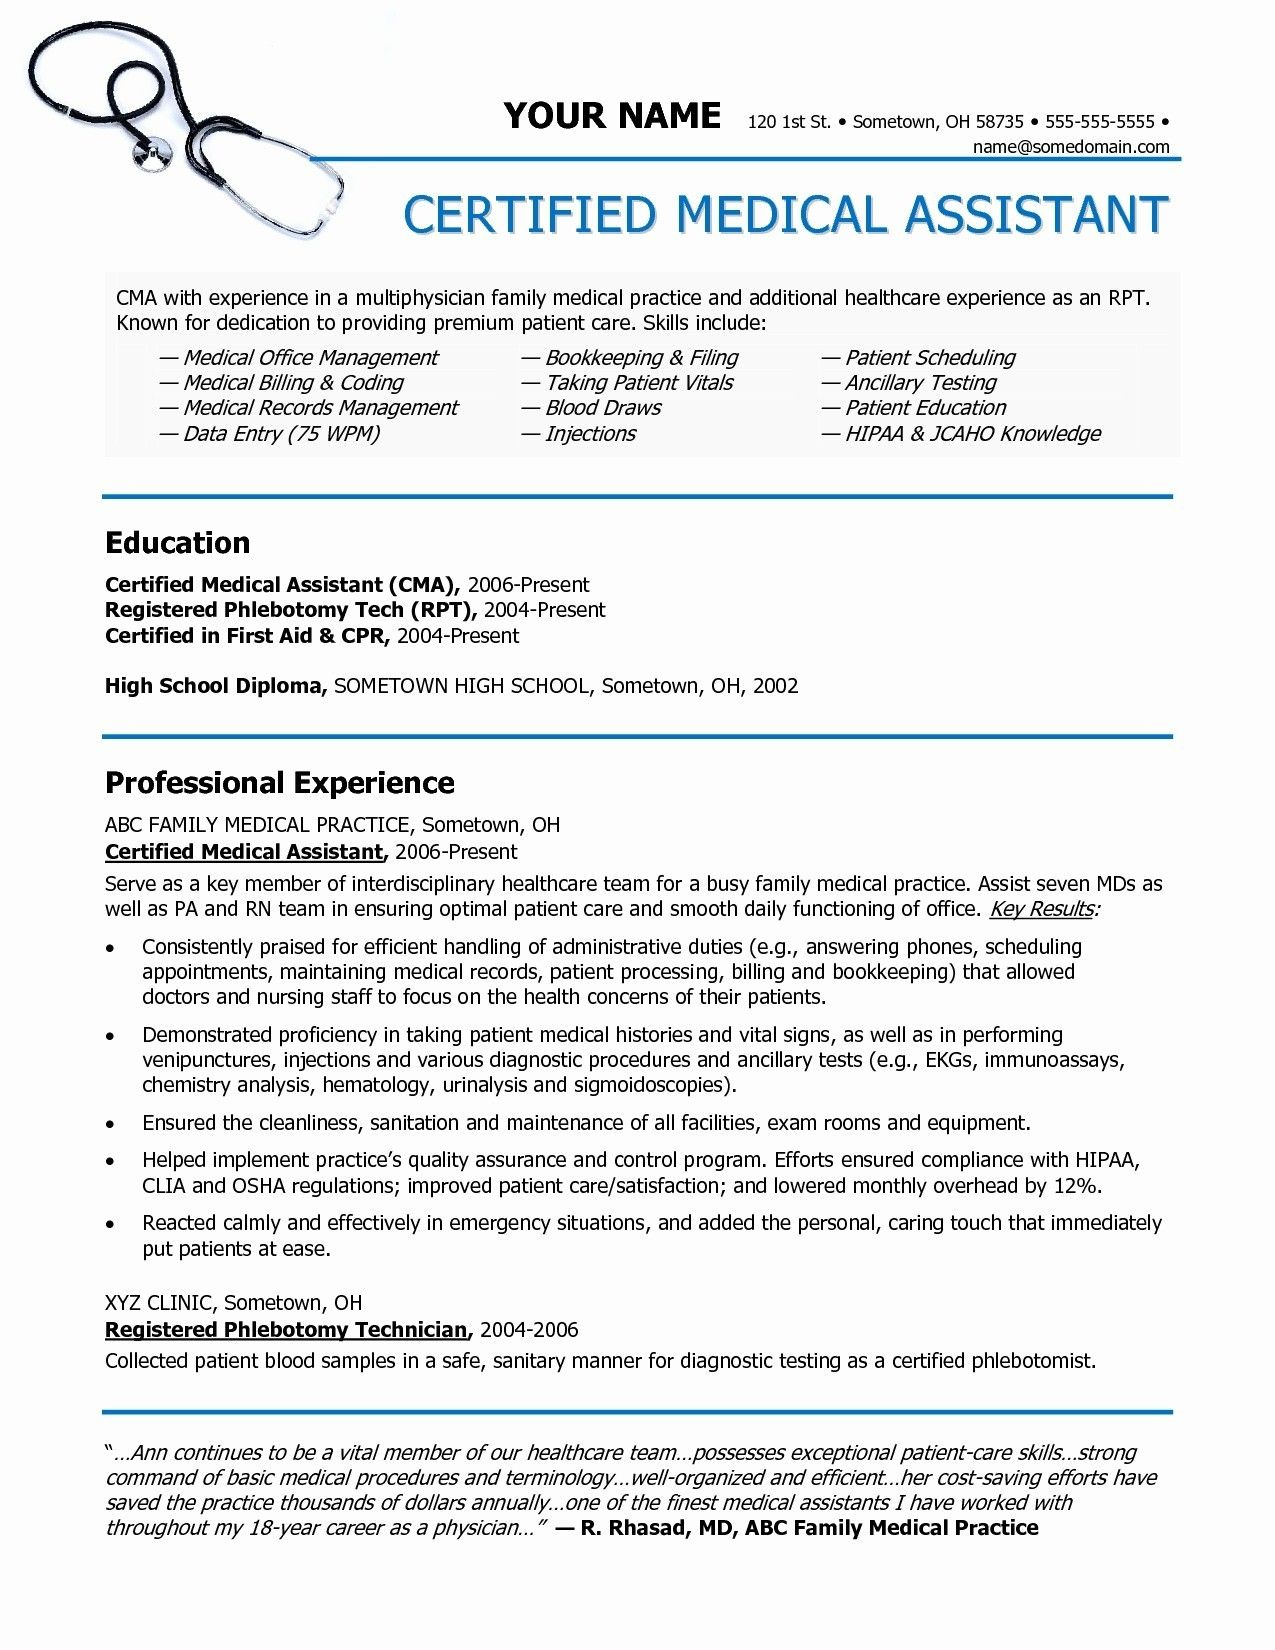 unique image of resume example the objective medical assistant coder objectives samples Resume Medical Assistant Resume Objectives Samples